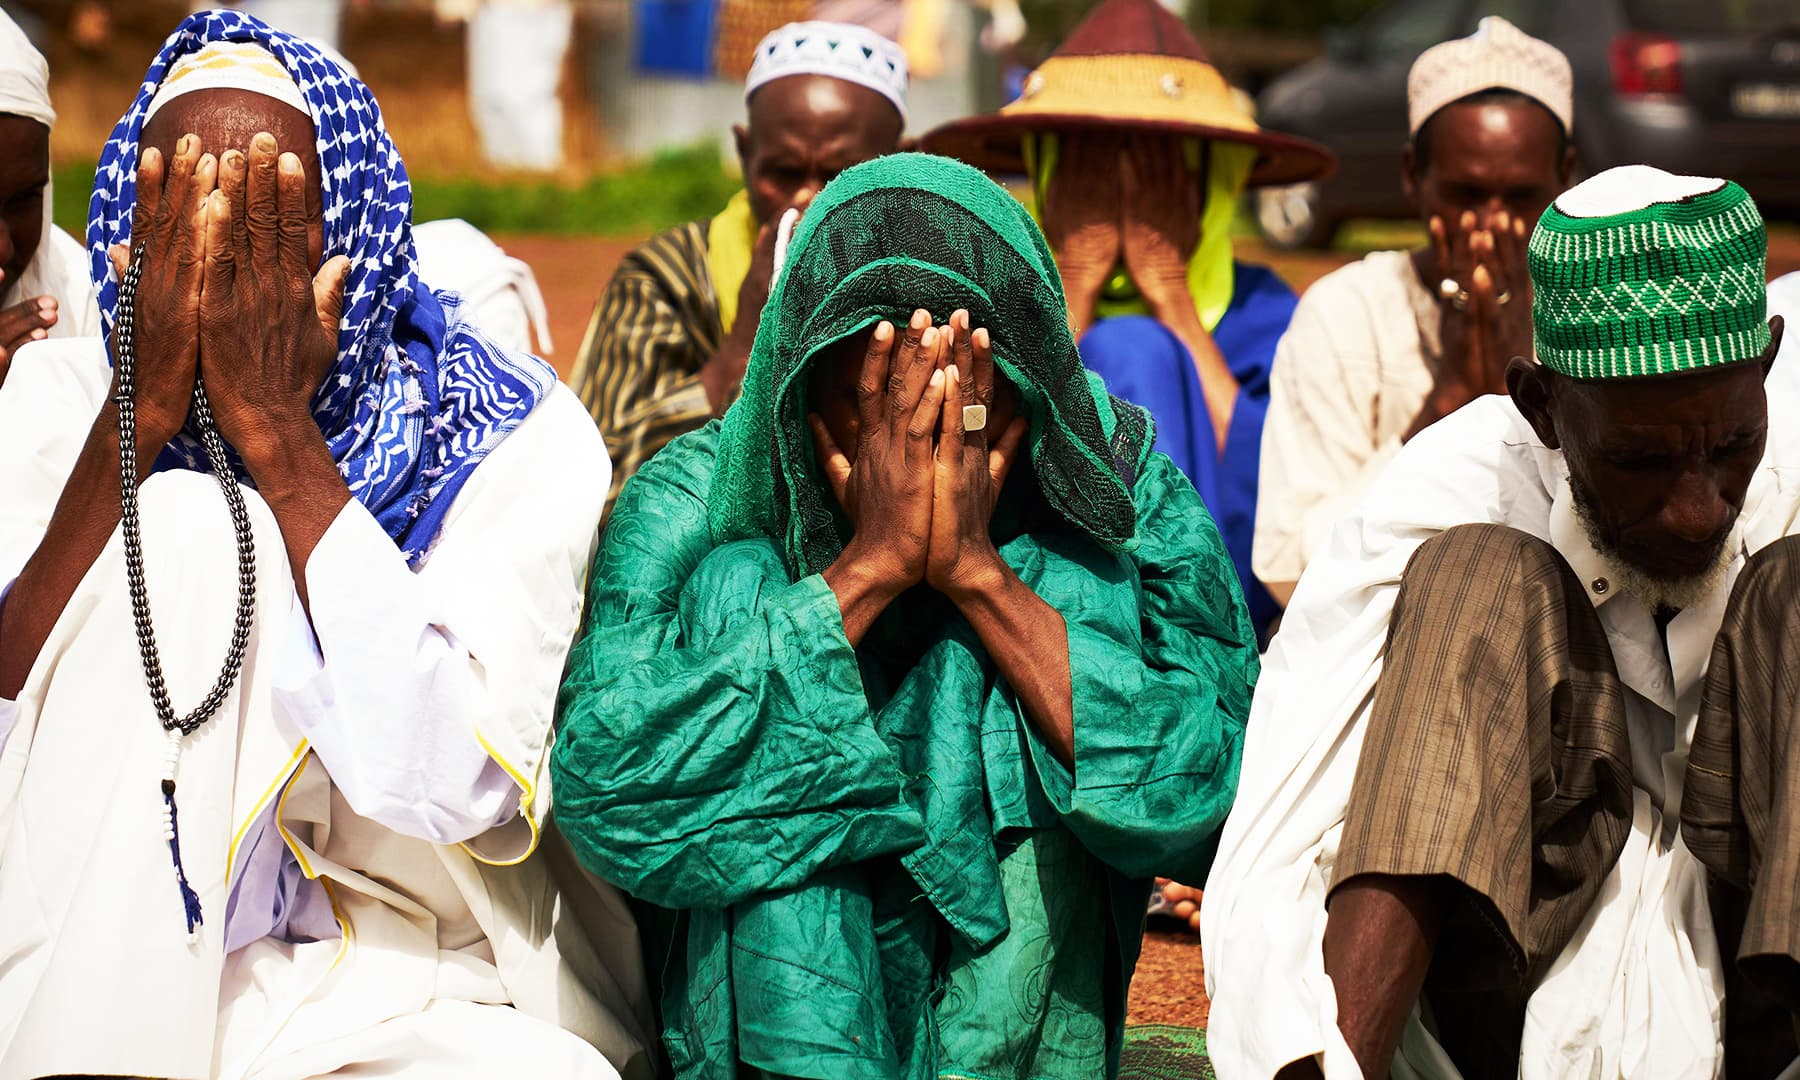 Fulani displaced men cover their faces as they pray during the Eidul Azha in a refugee camp in Bamako on Sunday. — AFP